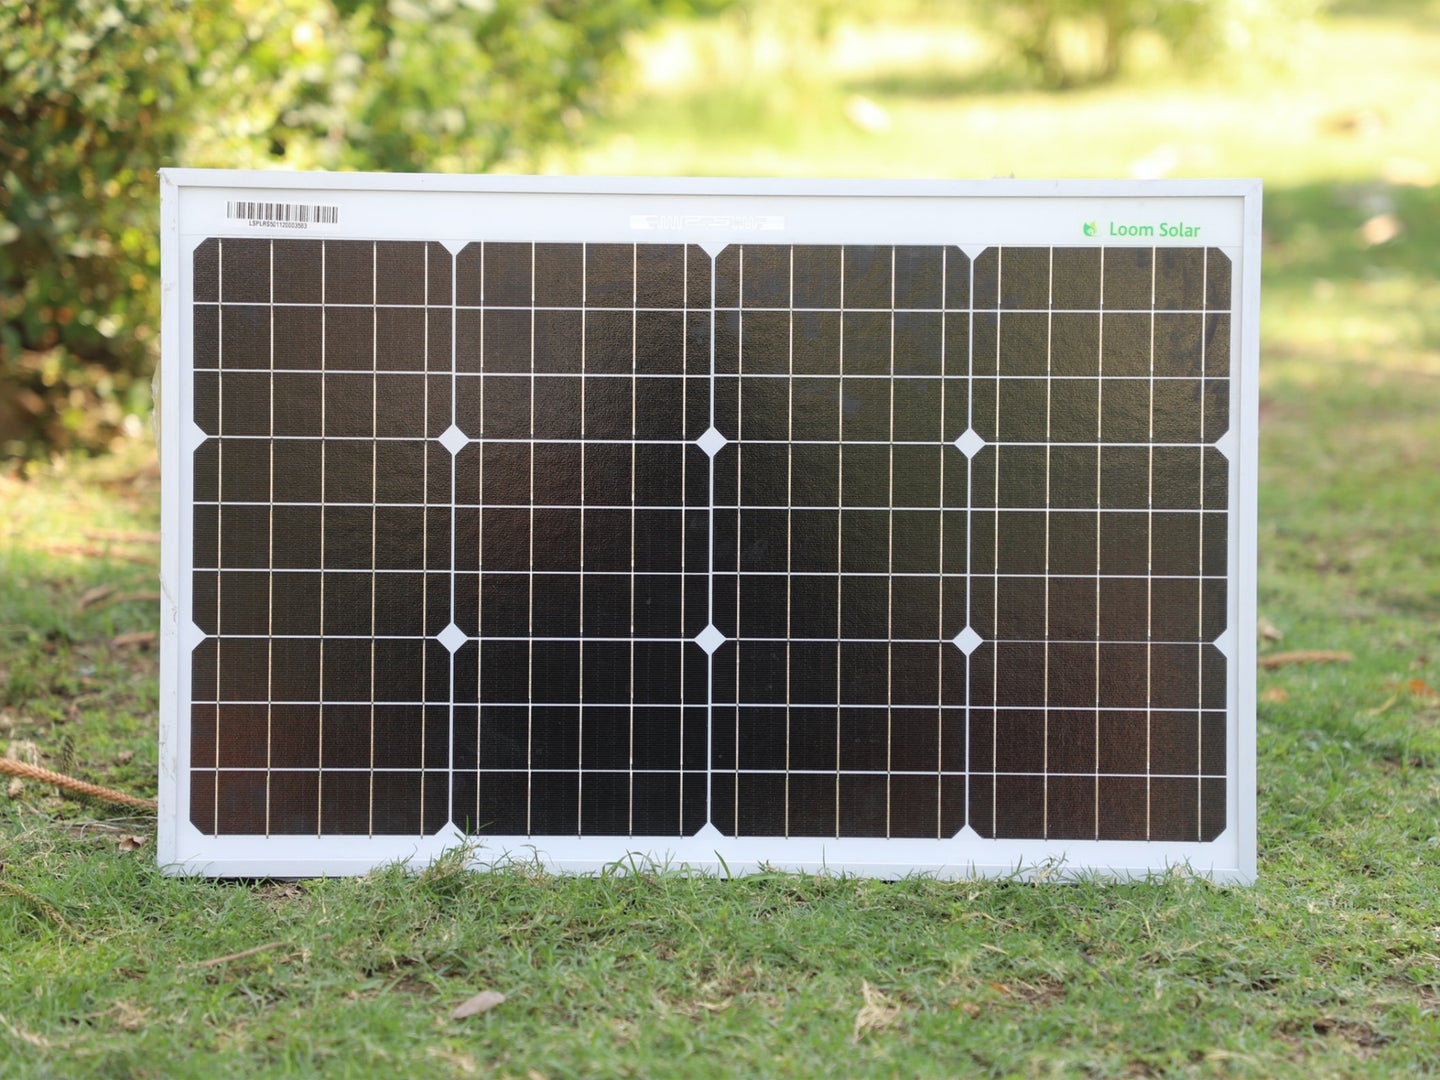 A small, portable solar panel for charging your devices.